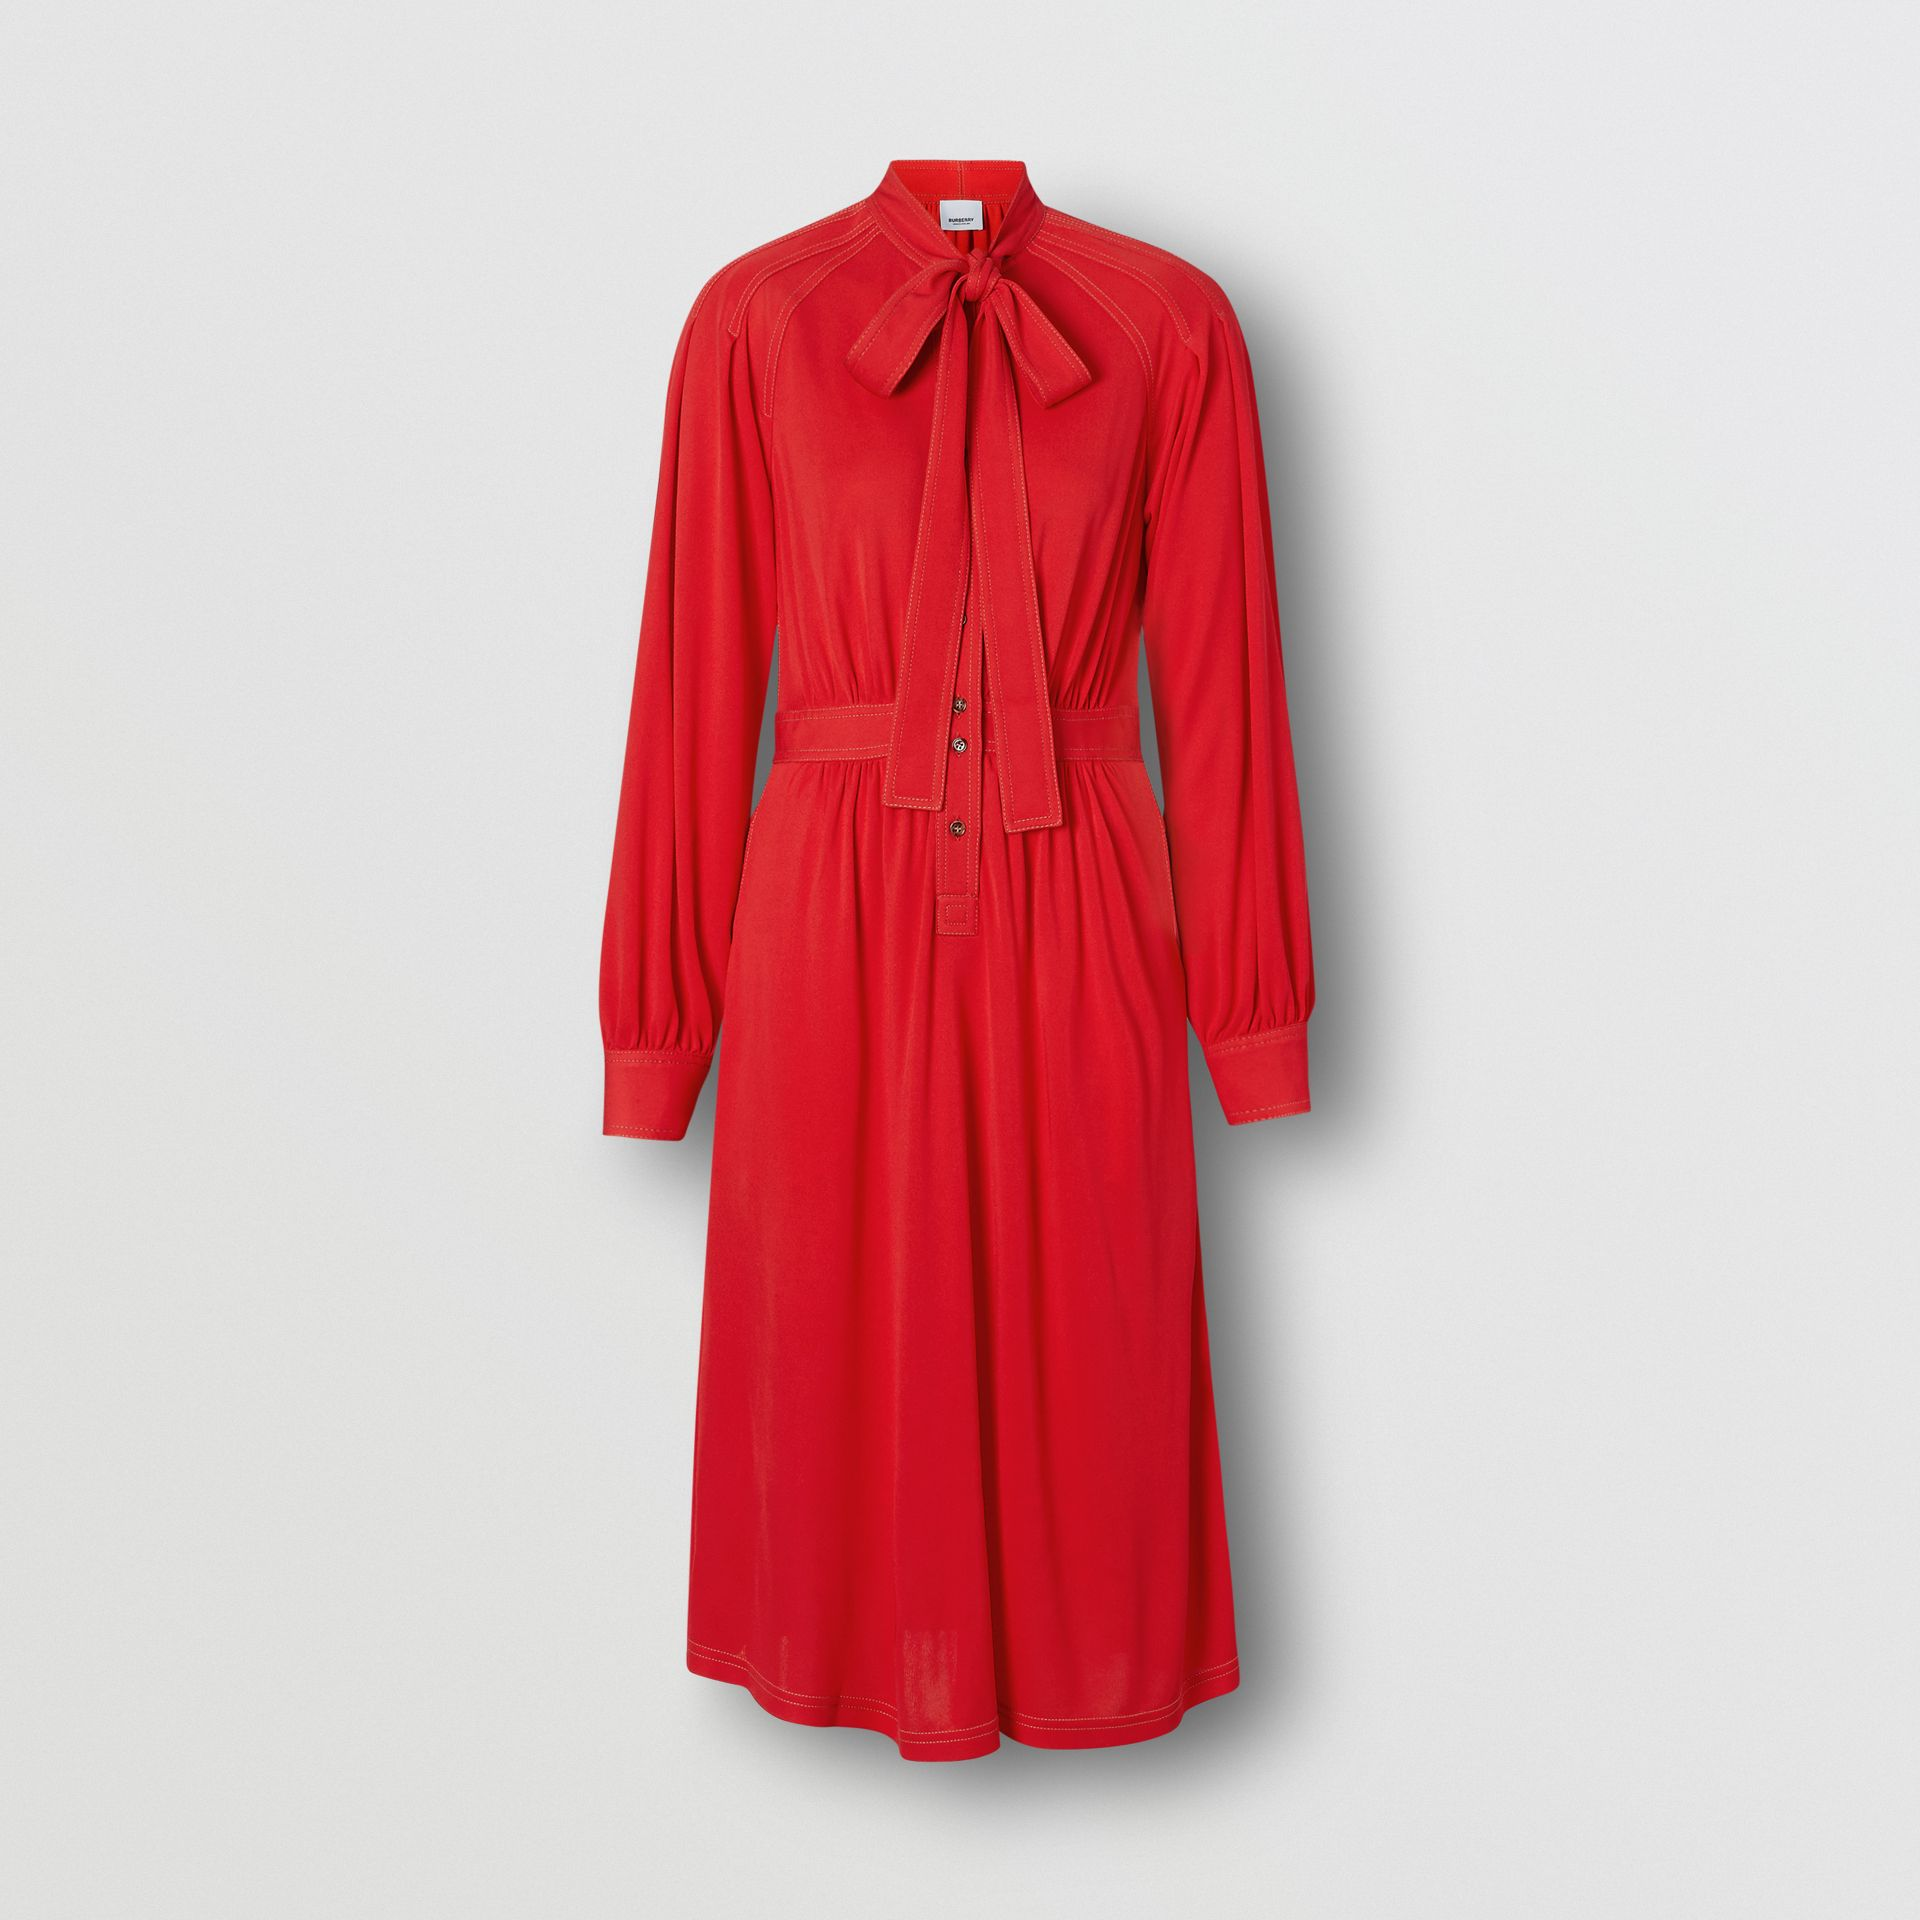 Topstitch Detail Jersey Tie-neck Dress in Bright Red - Women | Burberry Australia - gallery image 3